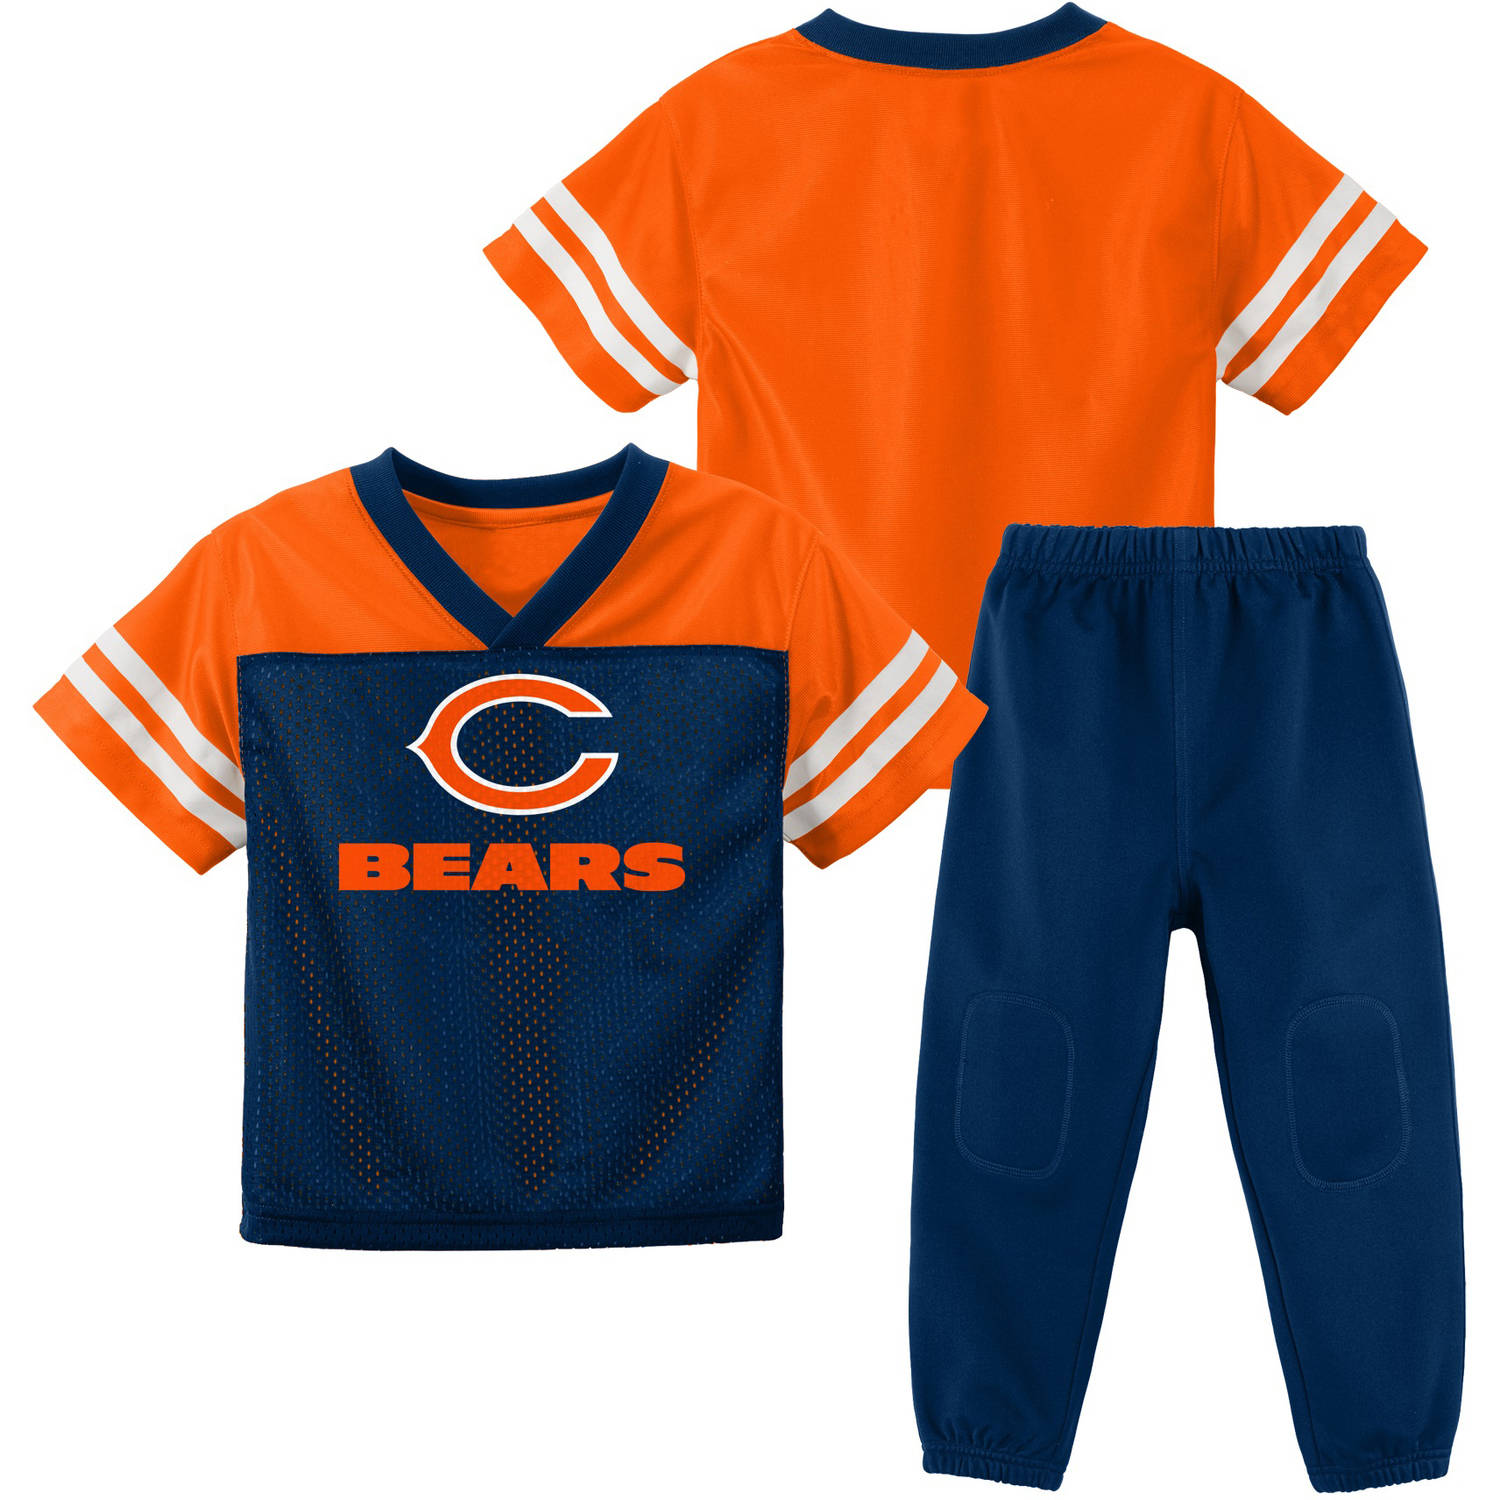 NFL Chicago Bears Toddler Short Sleeve Top and Pant Set by